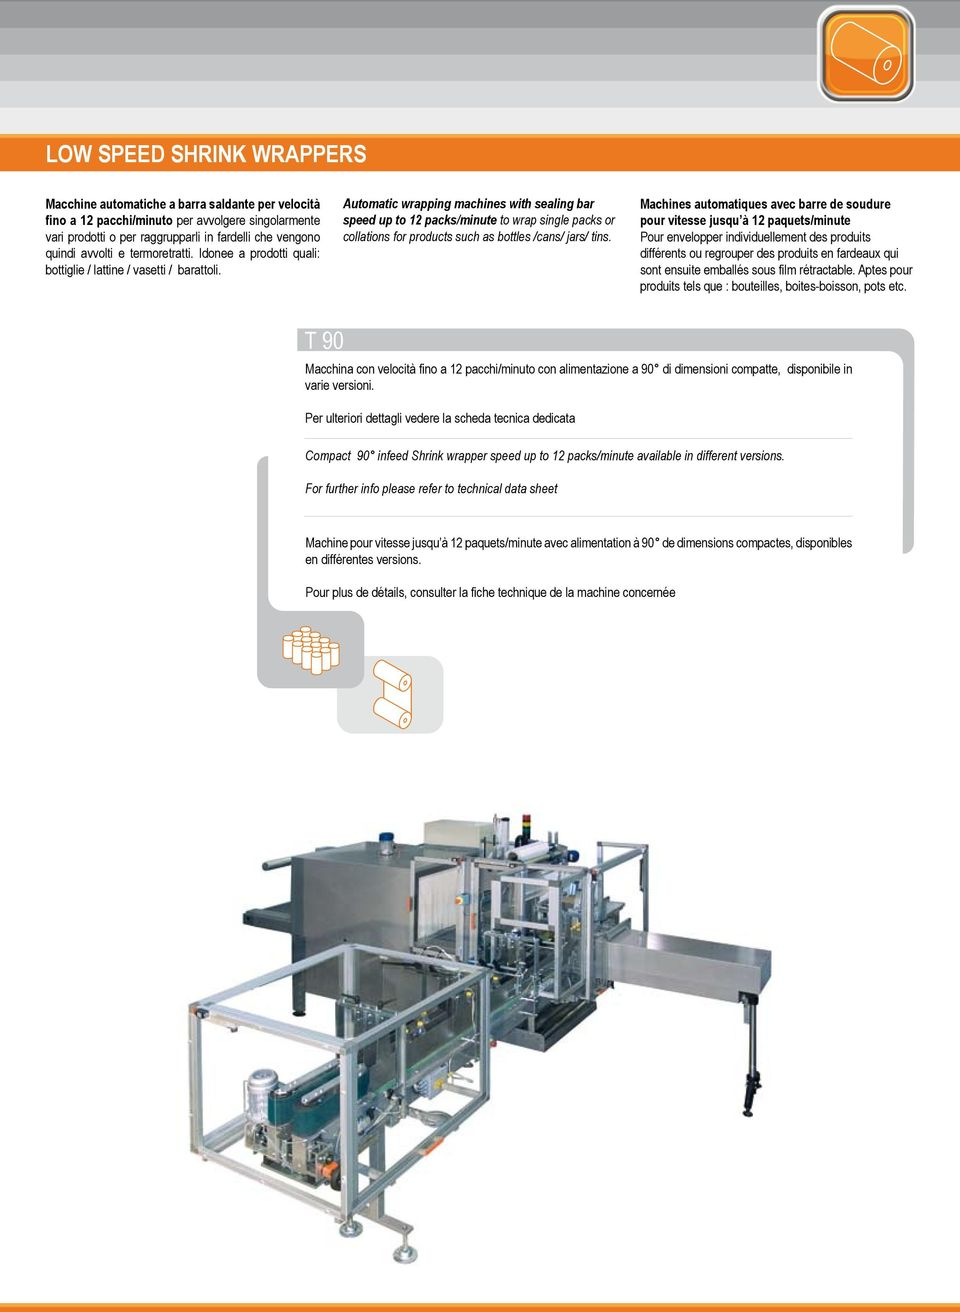 Automatic wrapping machines with sealing bar speed up to 12 packs/minute to wrap single packs or collations for products such as bottles /cans/ jars/ tins.